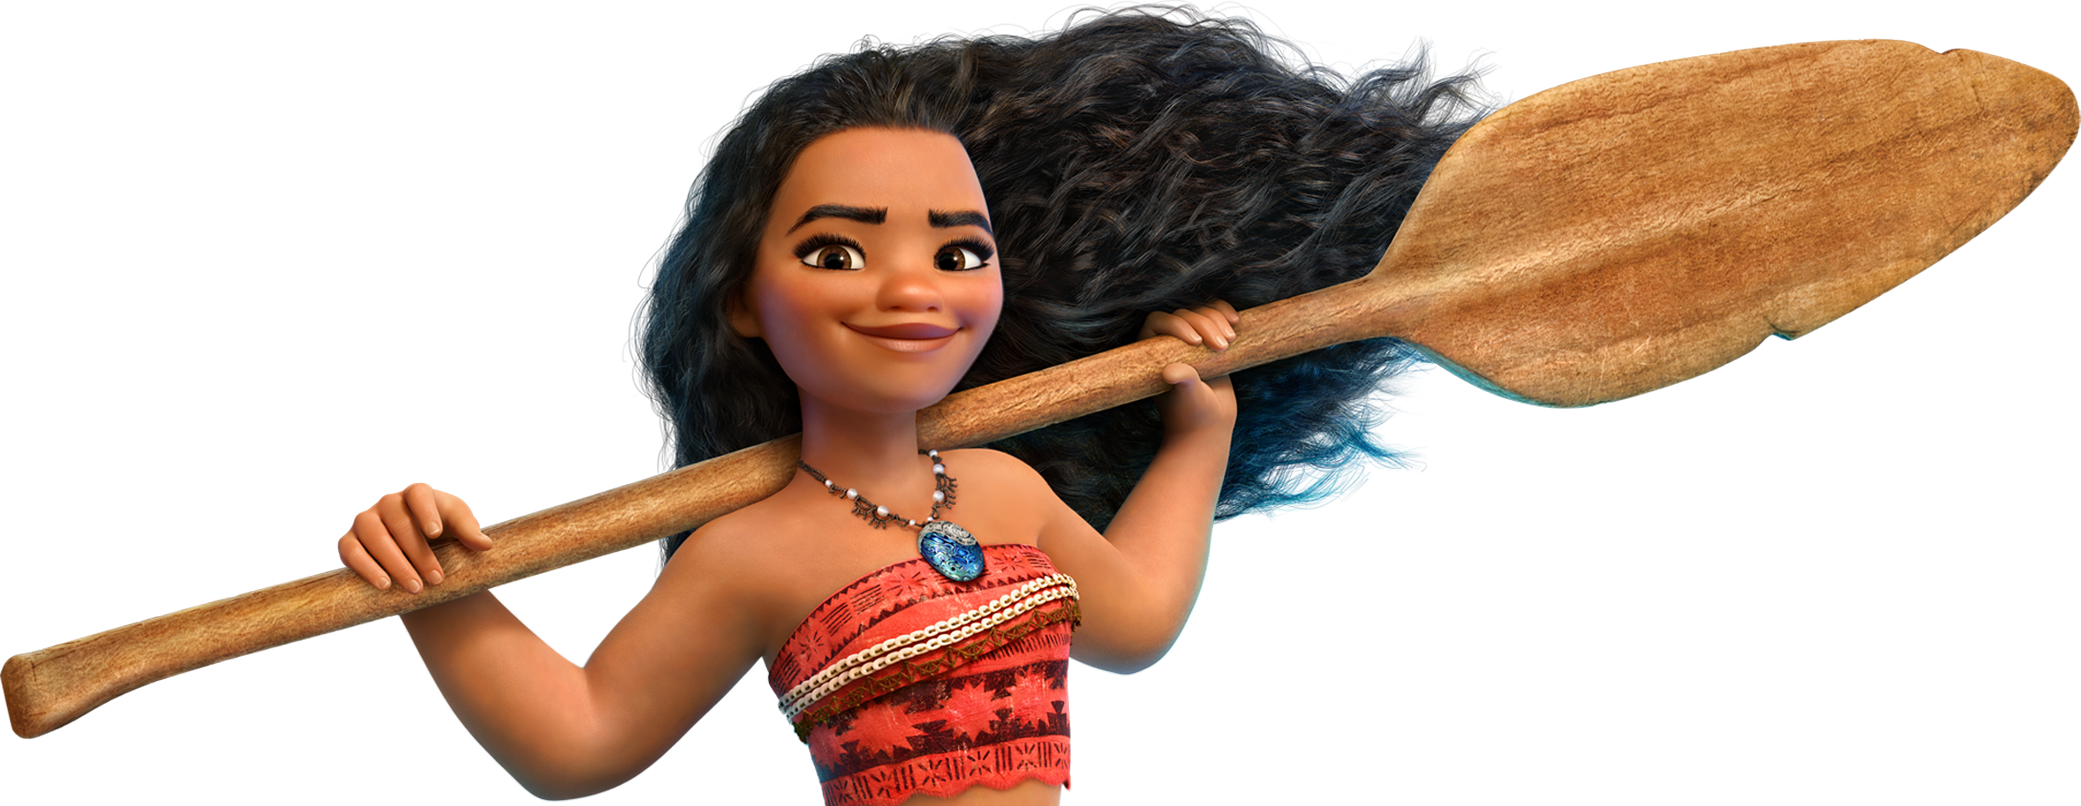 Moana clipart oar. Download free icons and